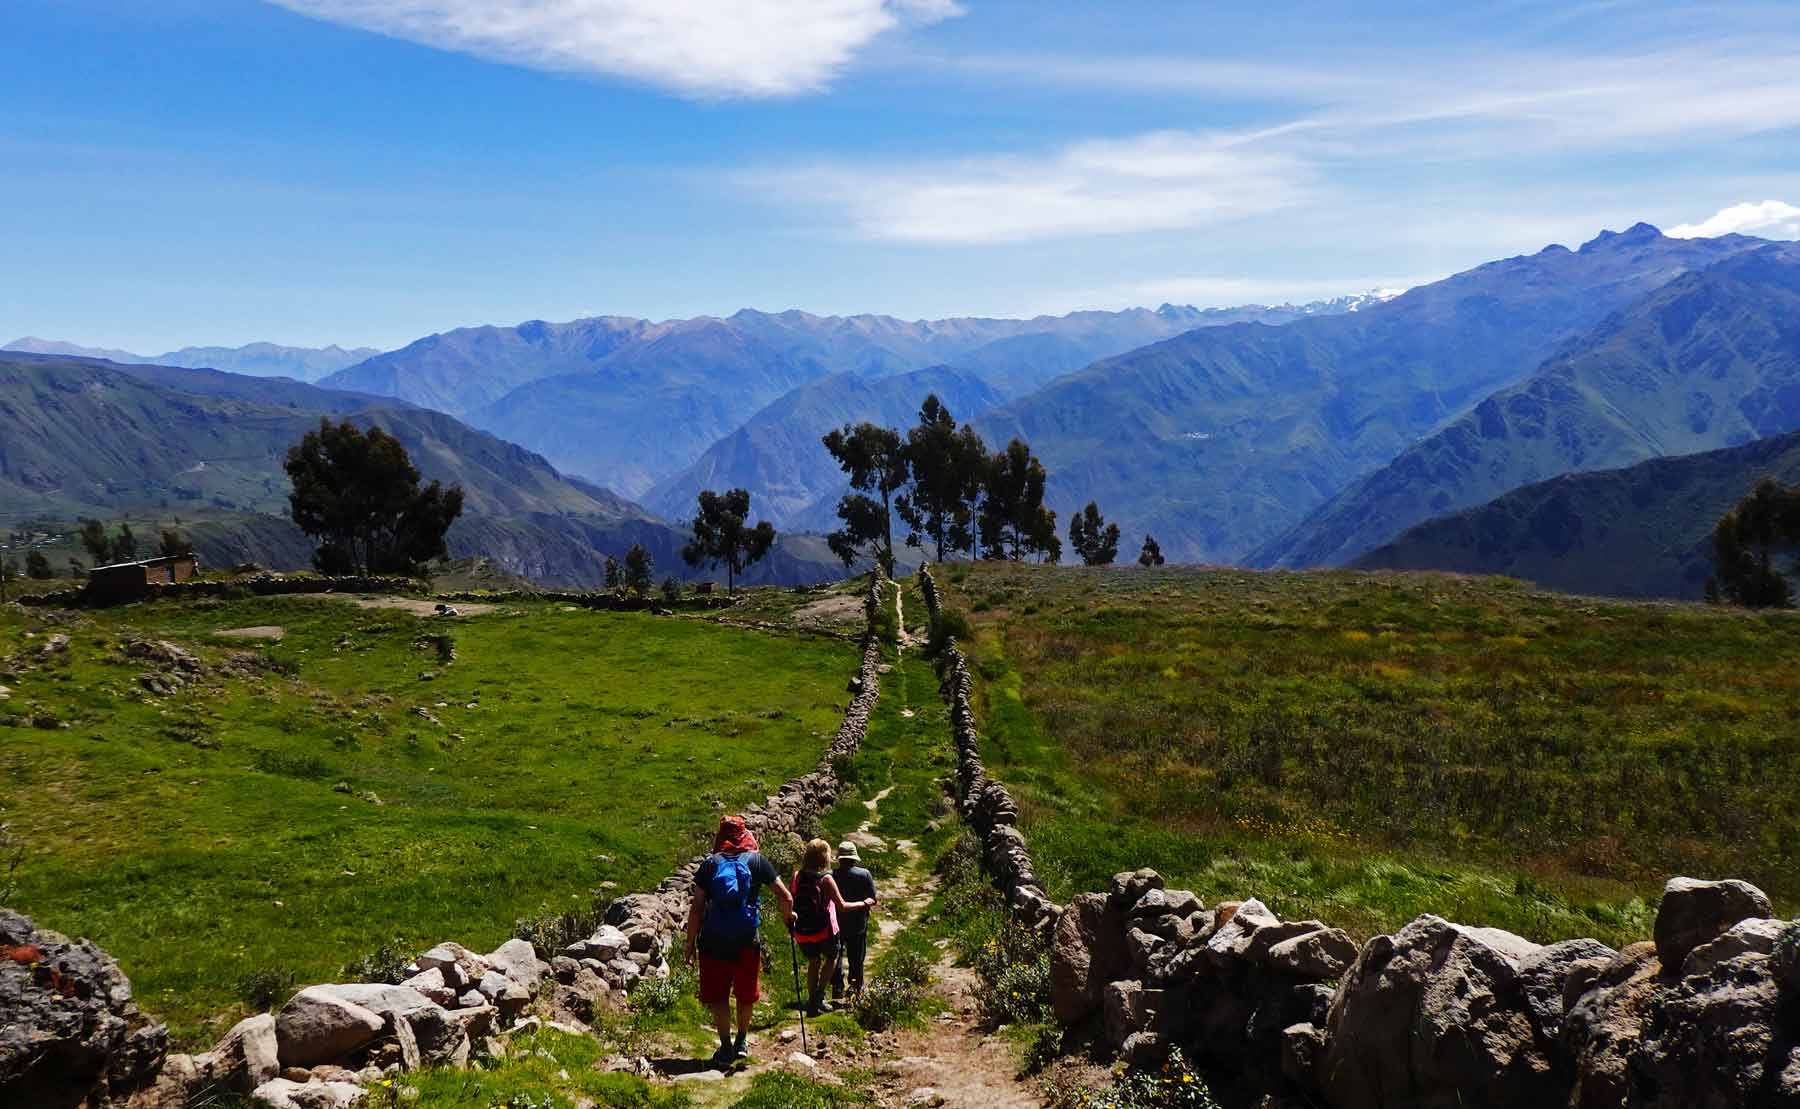 Here's why trekking Colca Canyon took my breath away. Three people walk down a country path